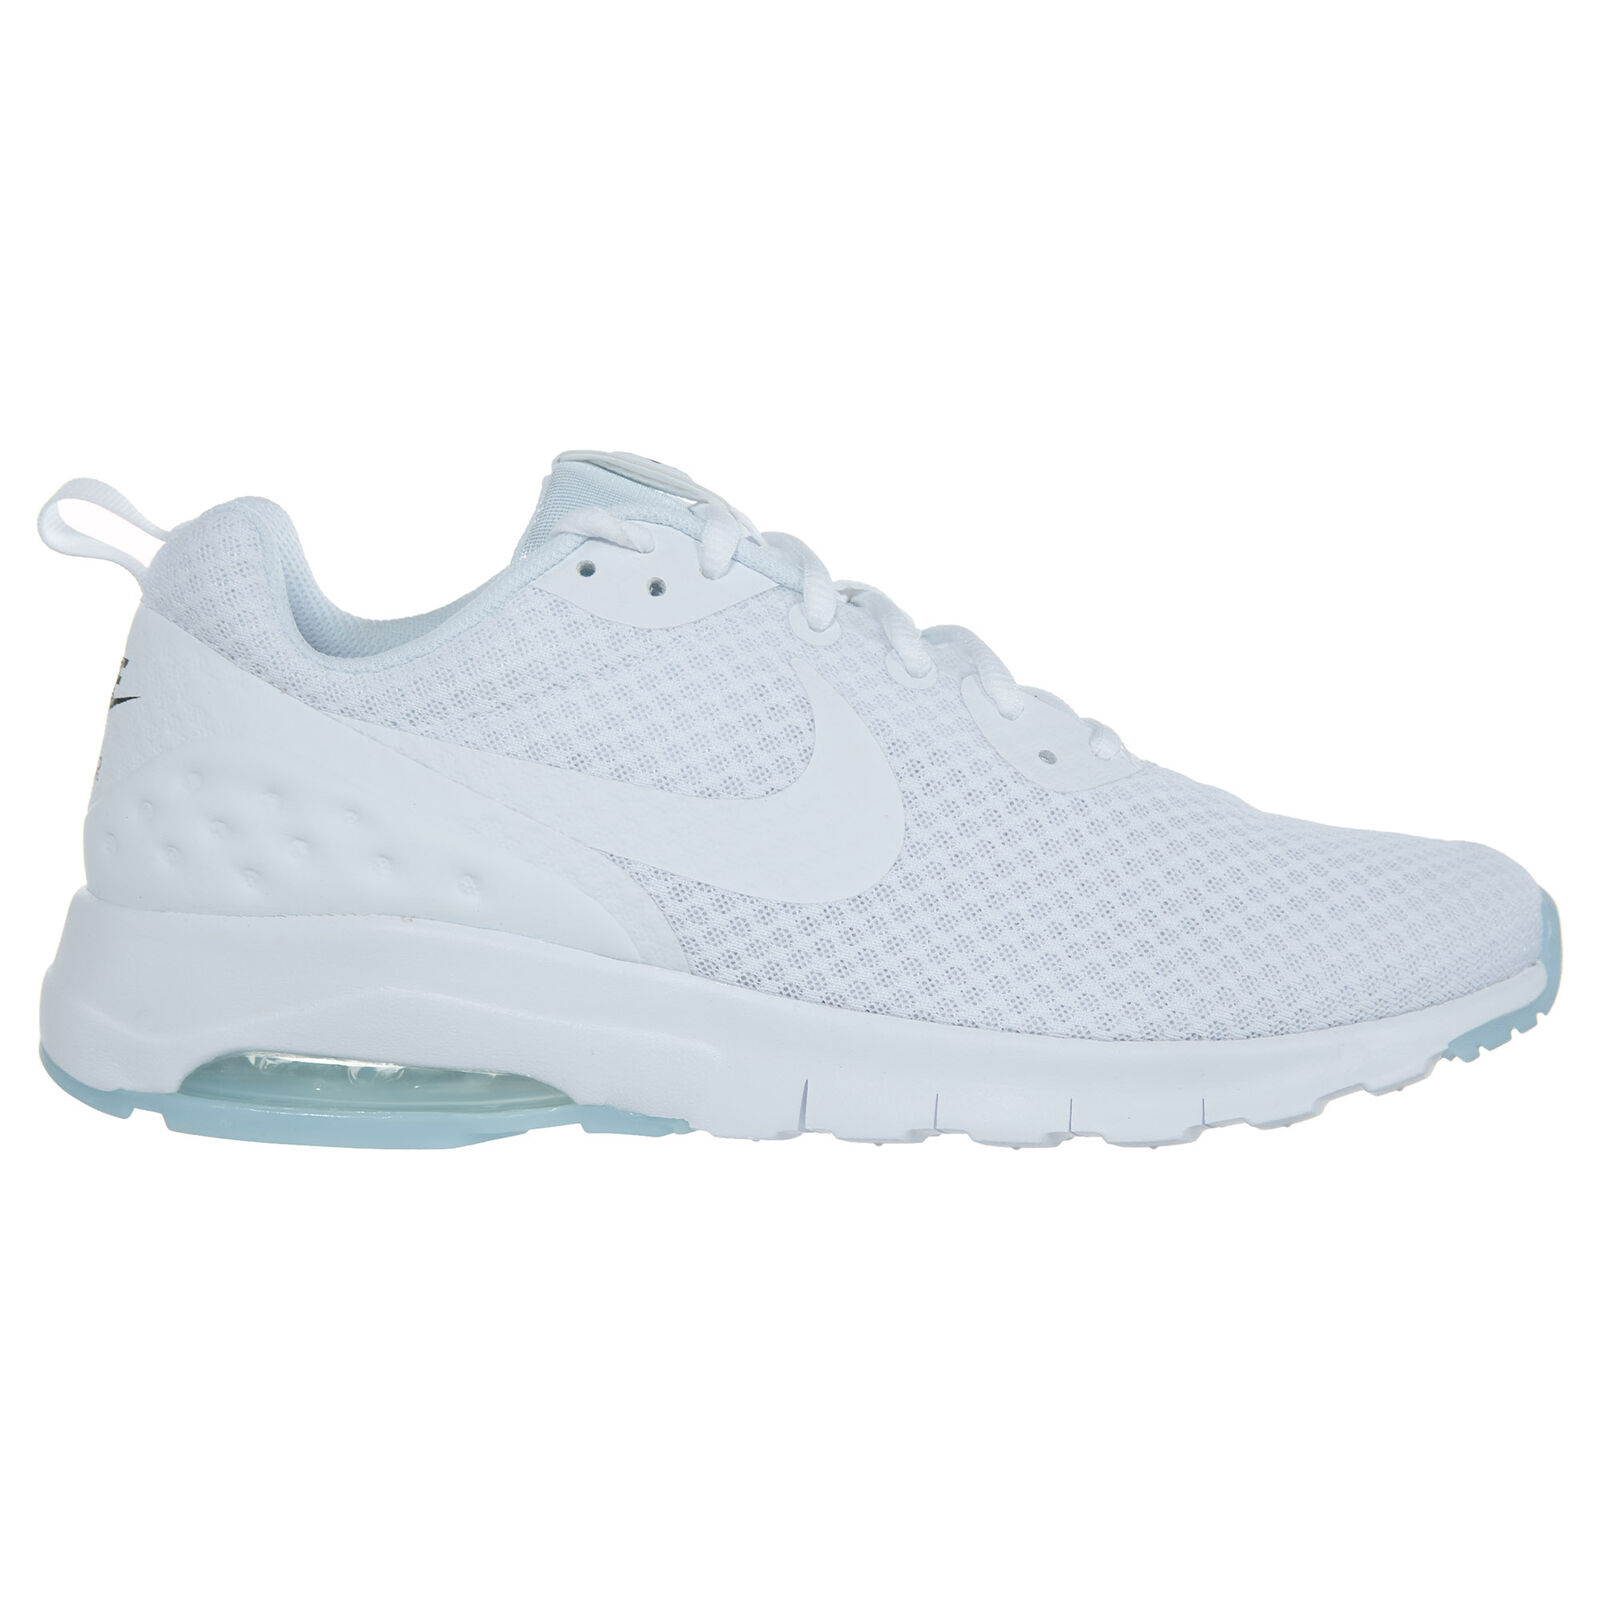 Nike Air Max Motion LW Mens 833260 110 White Mesh Running Shoes Size 7.5